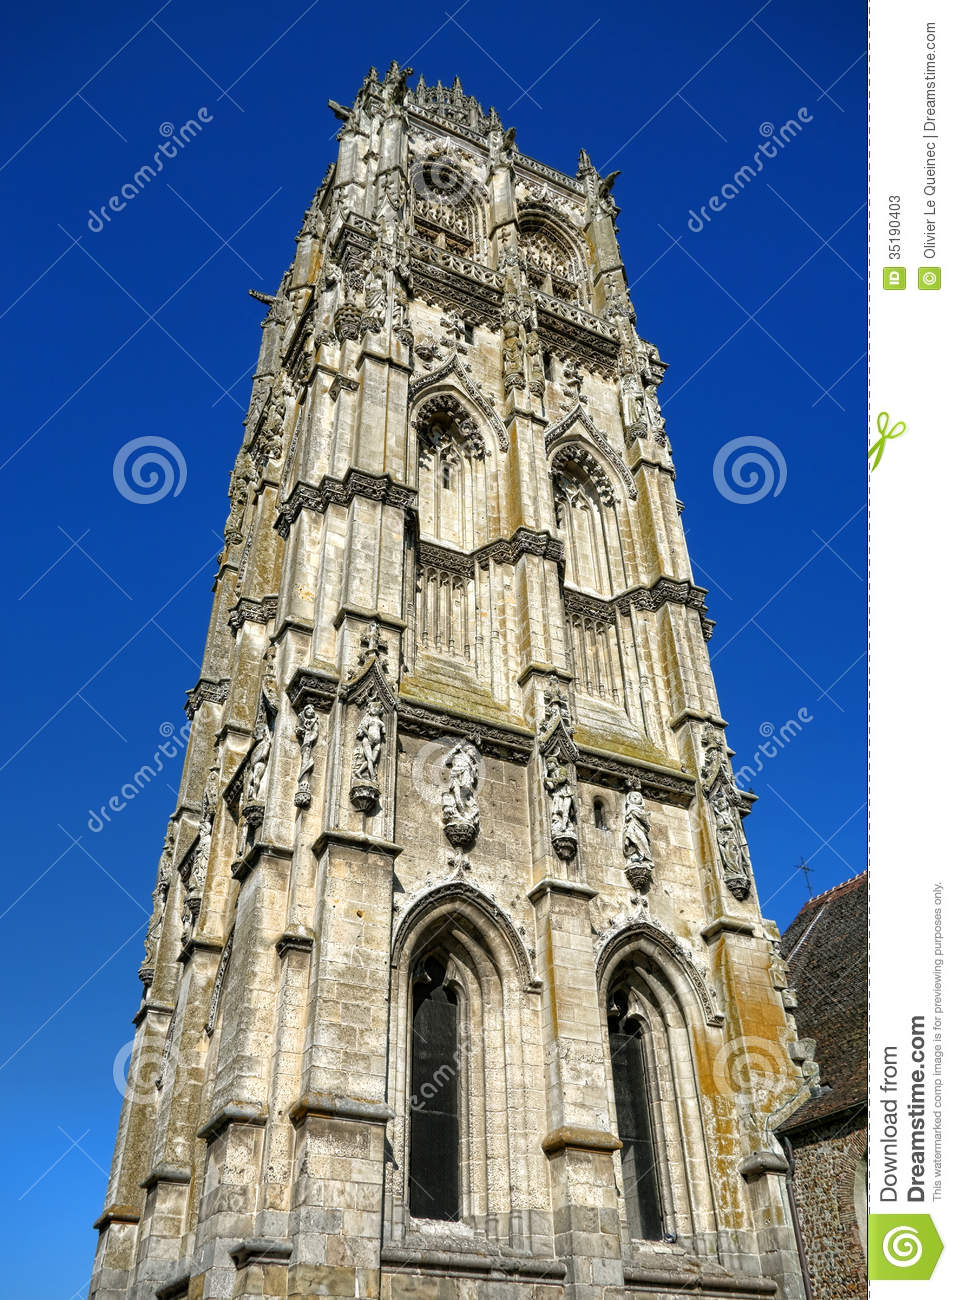 Gothic Church Stone Tower Steeple Over Blue Sky Stock